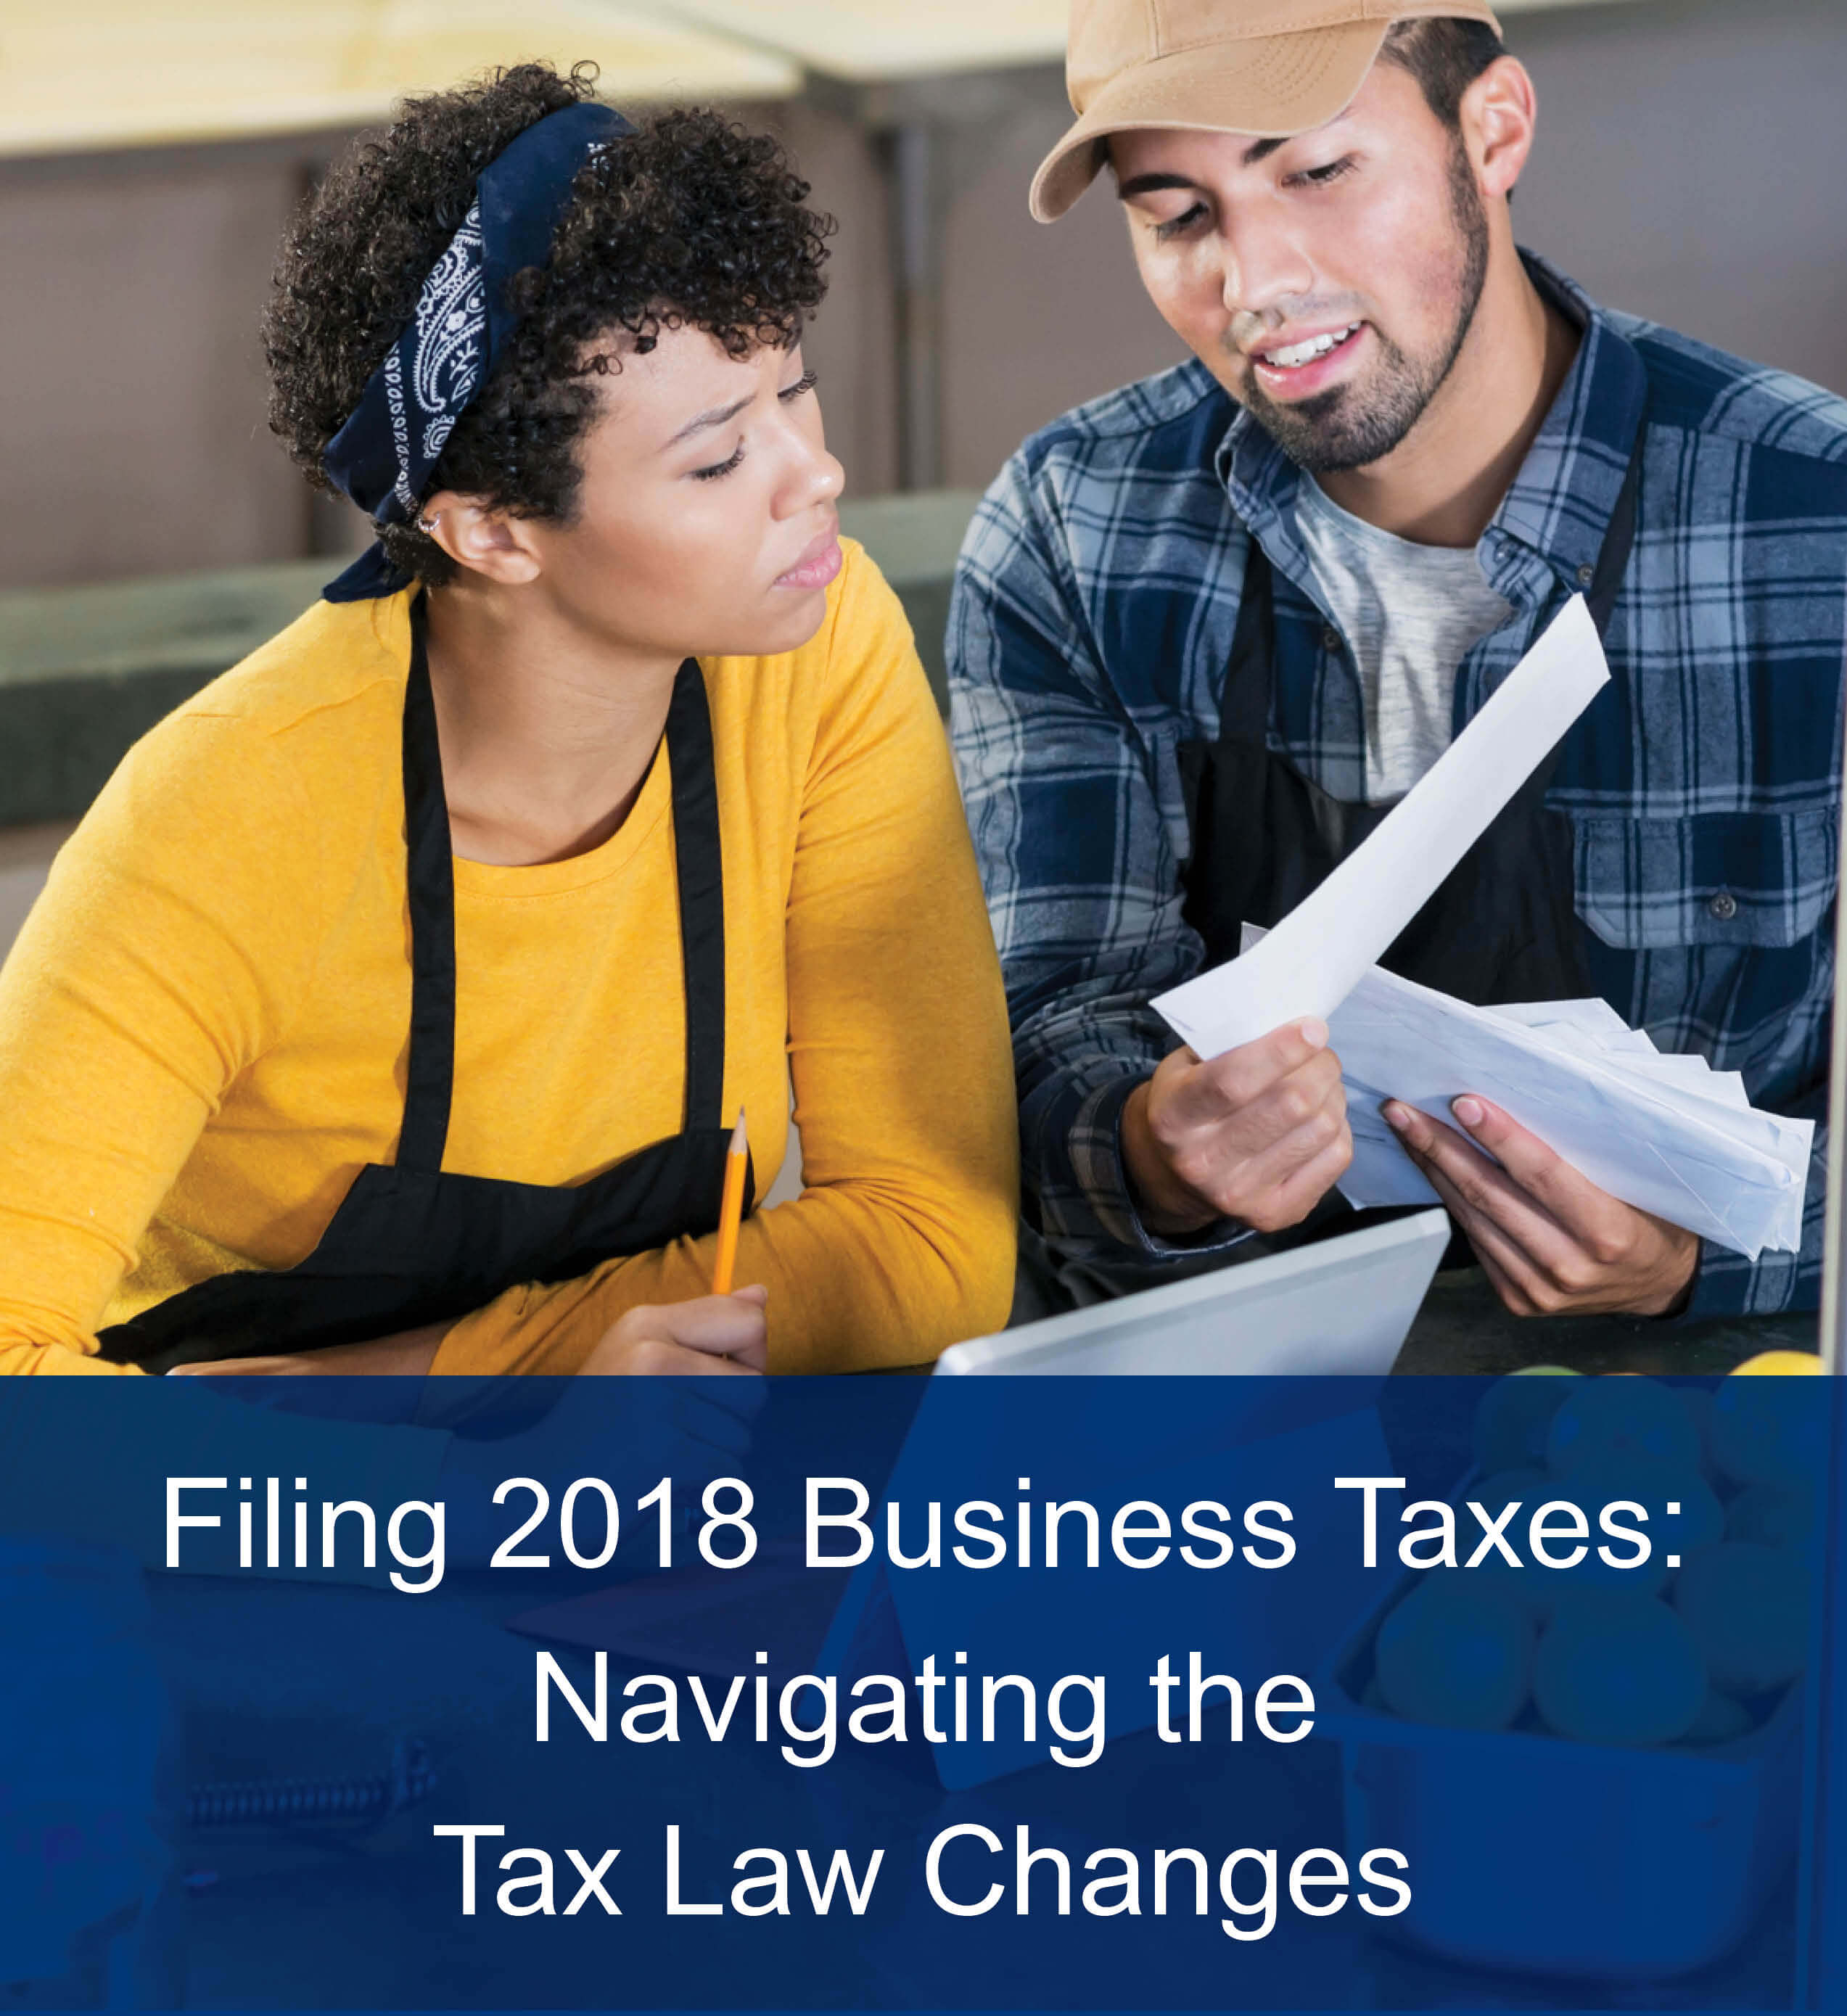 Navigating the Tax Law Changes